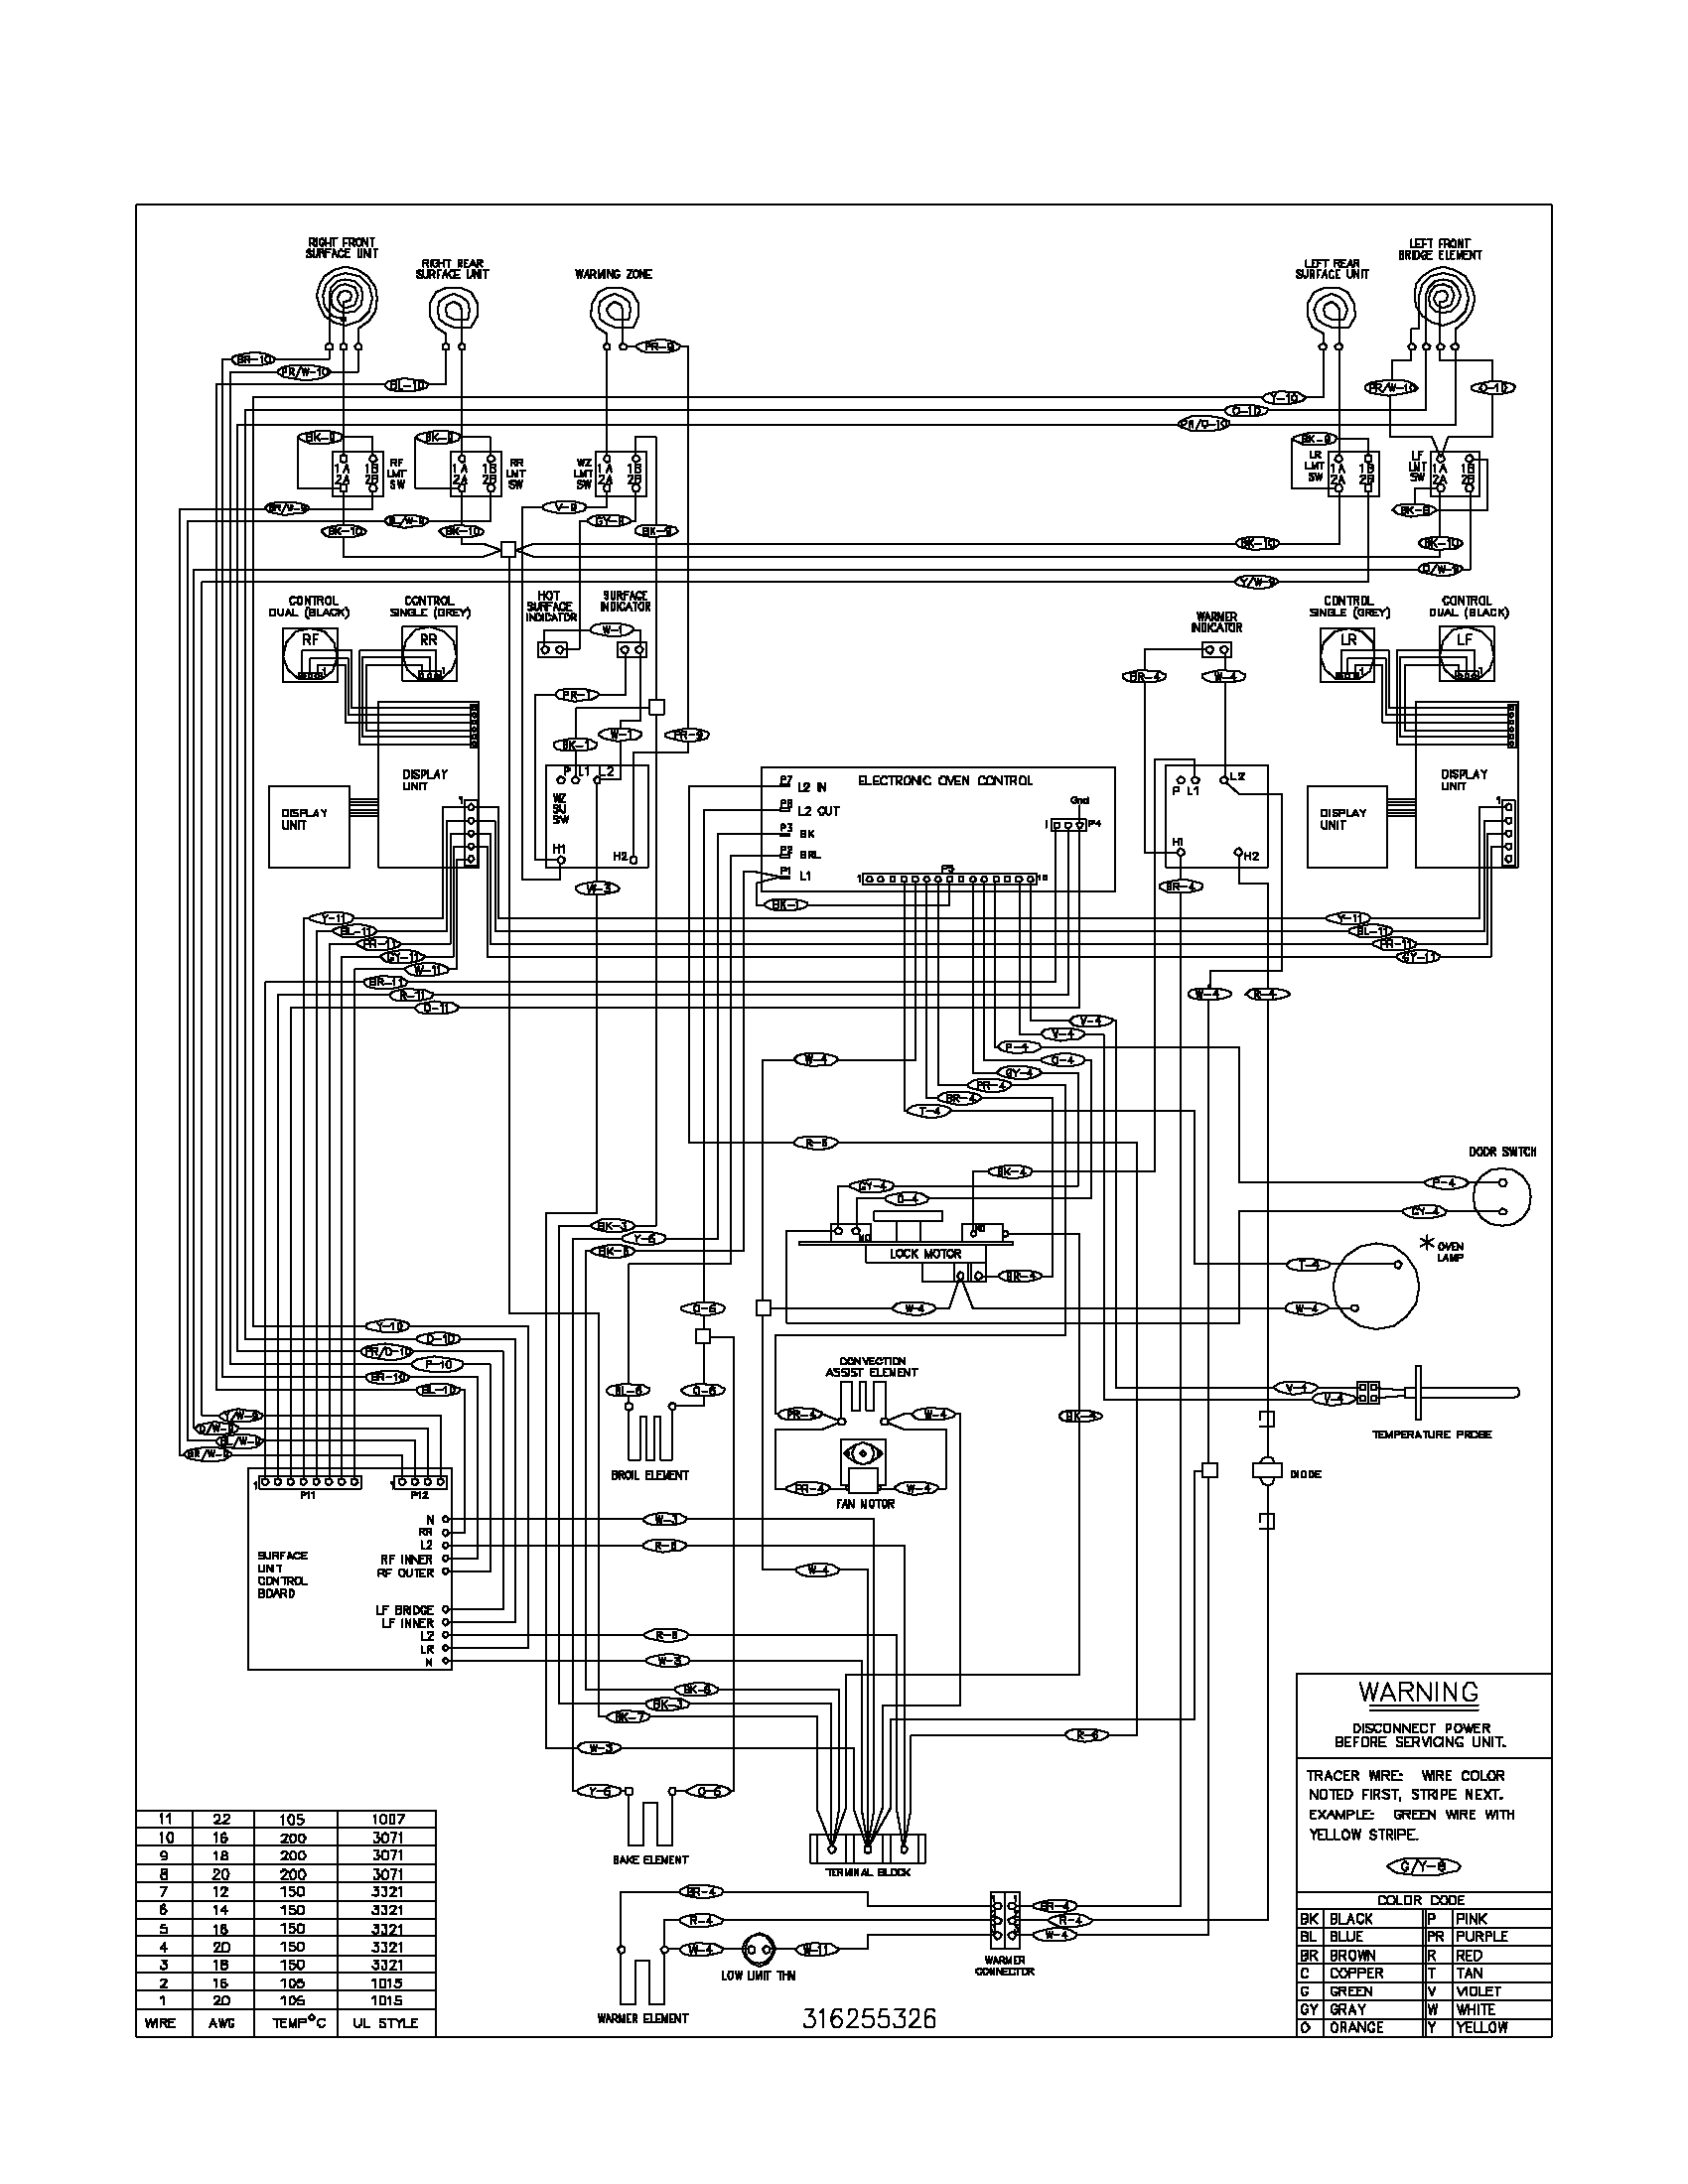 Electric Stove Wiring Diagram 29 Images Schematic Parts Frigidaire Washer At